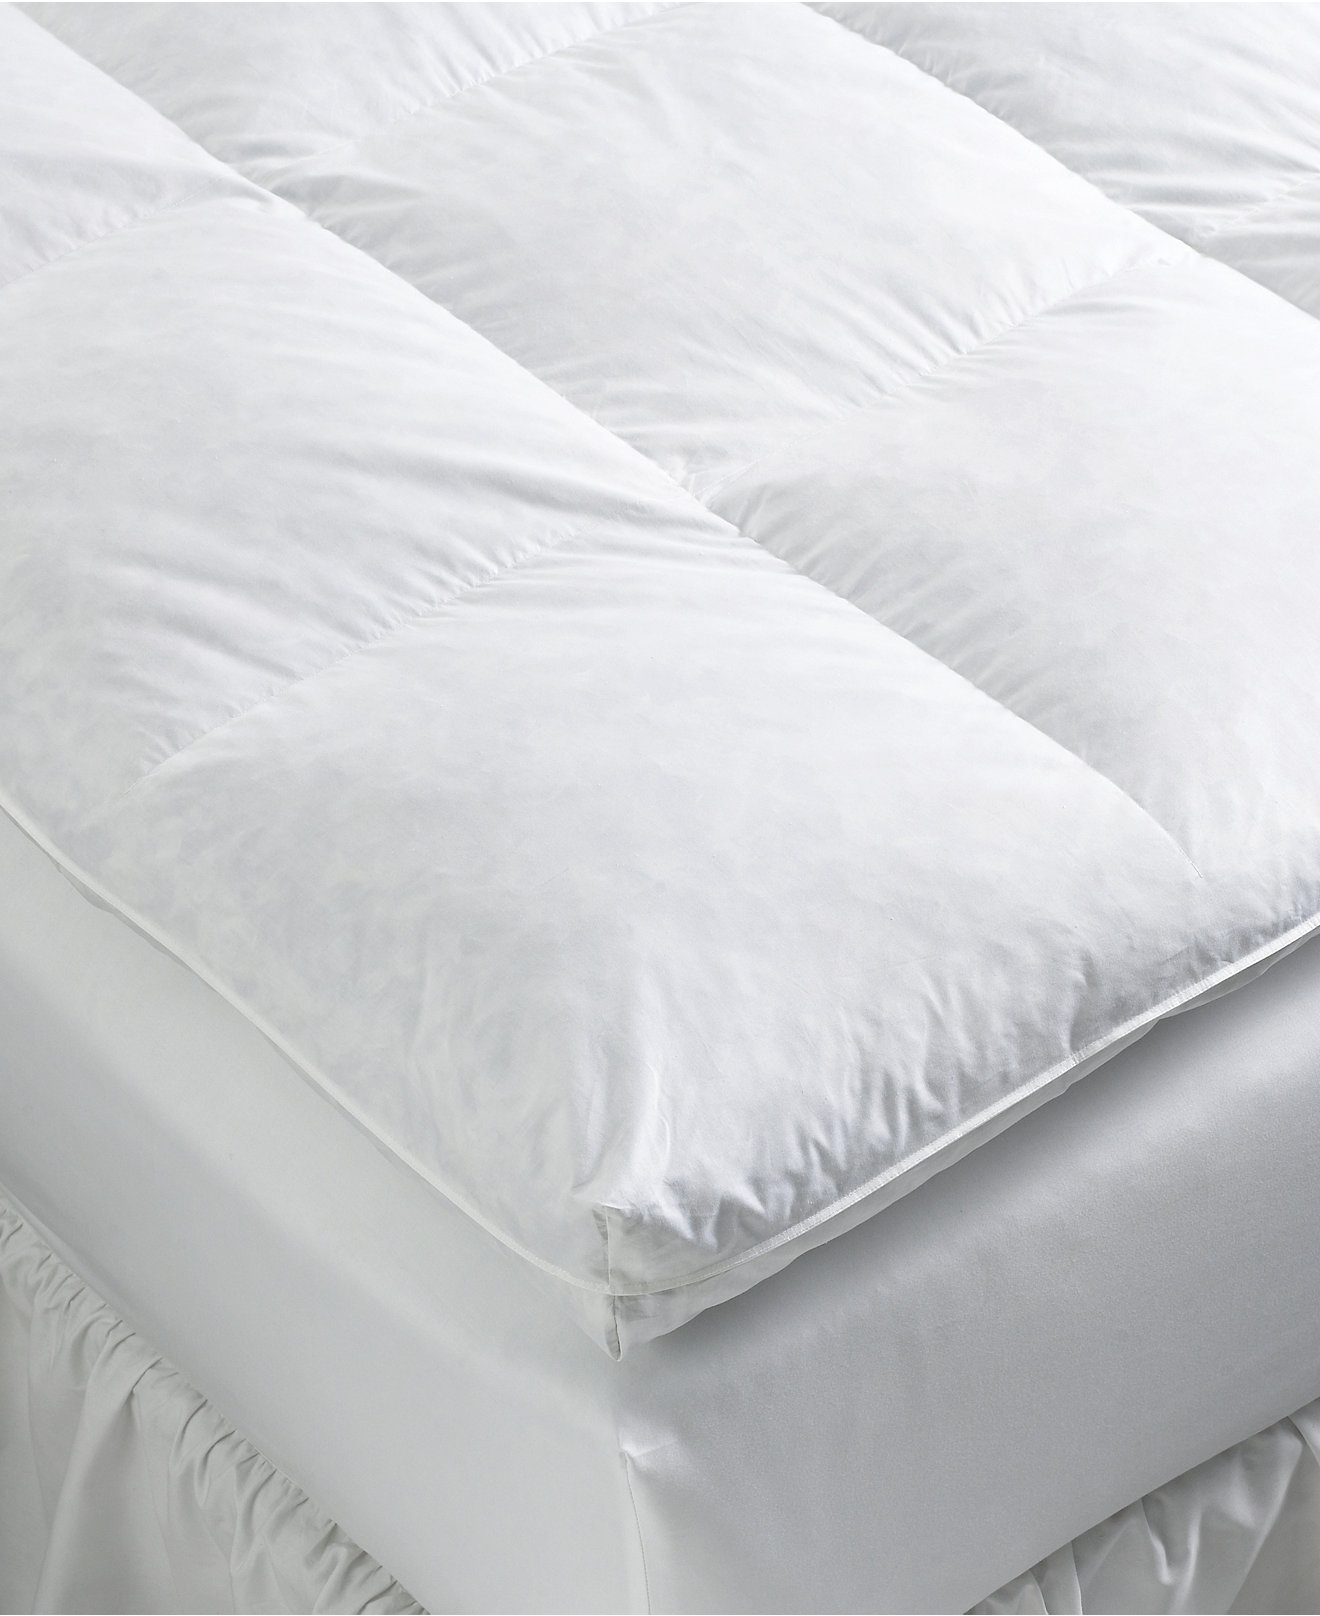 Pacific Coast Comforter | Full Down Comforter | Costco Pacific Coast Down Comforter